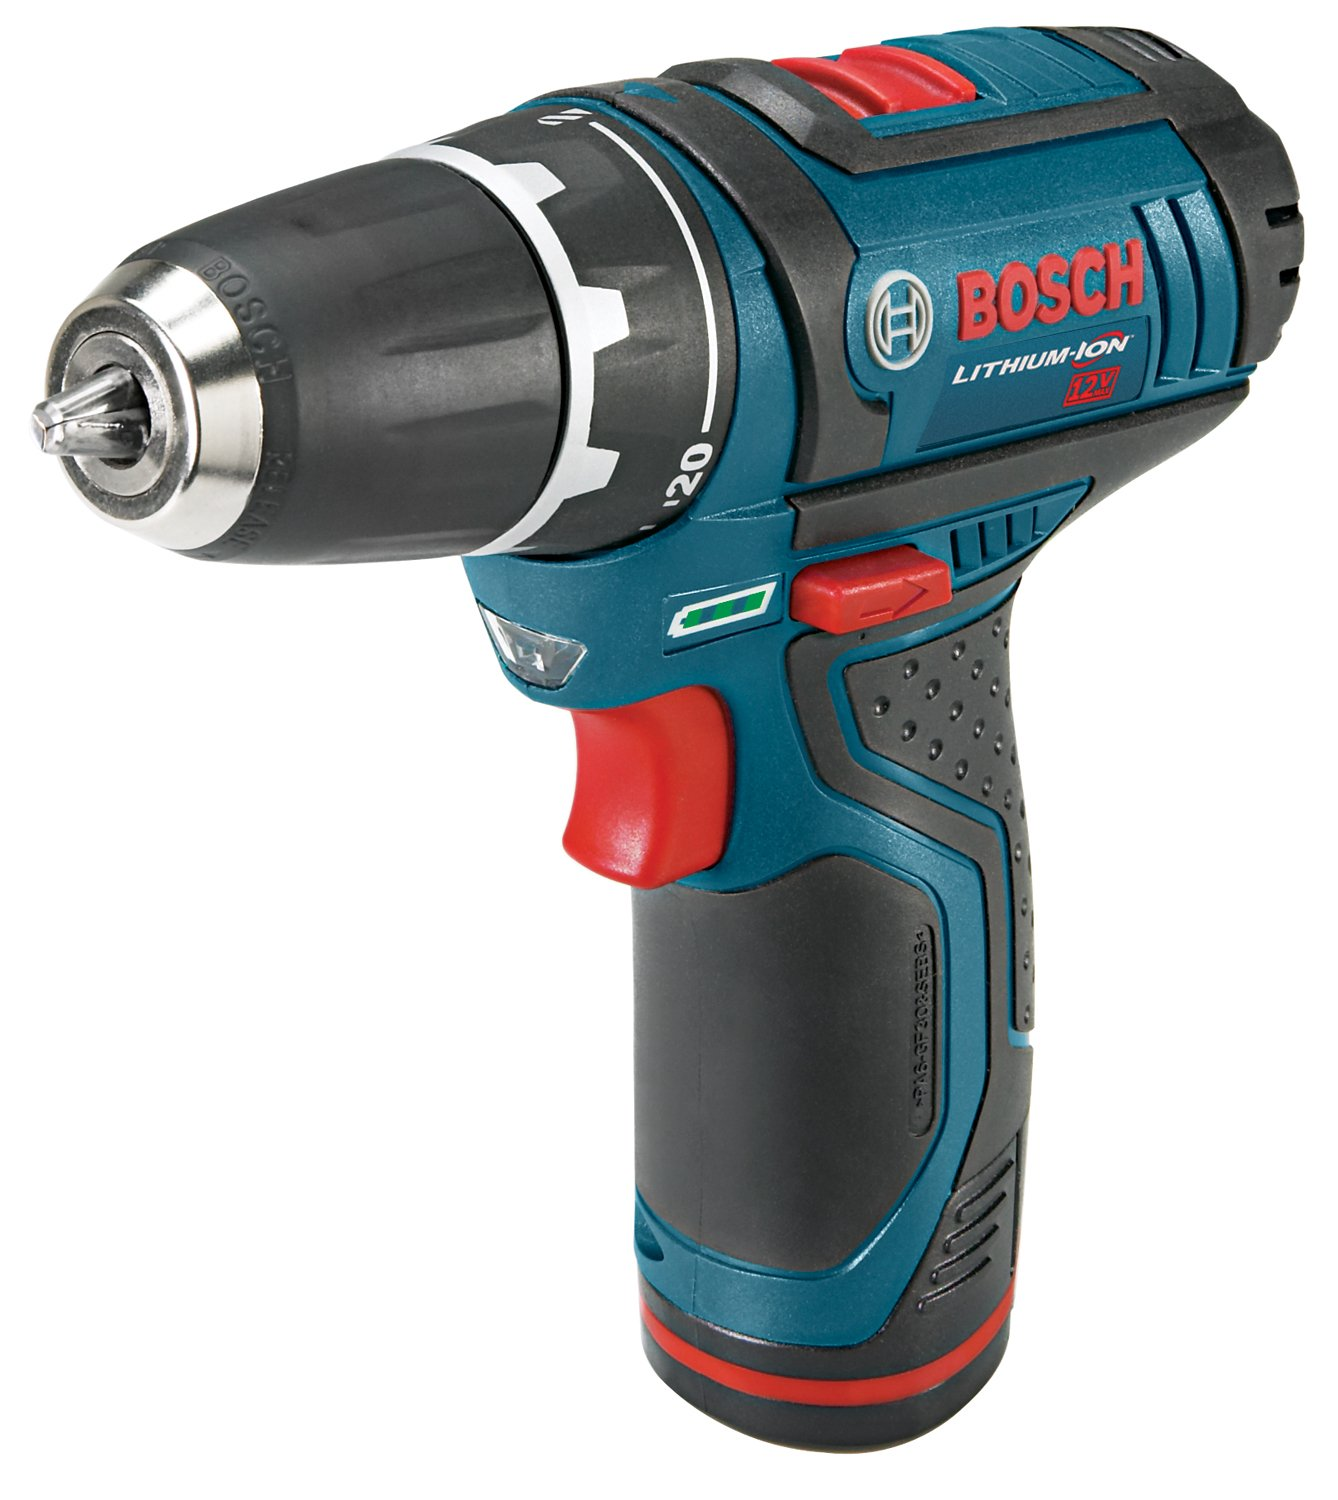 Bosch PS31-2A 12-Volt Max Lithium-Ion 3/8-Inch 2-Speed Drill/Driver Kit with 2 Batteries, Charger and Case $99.00